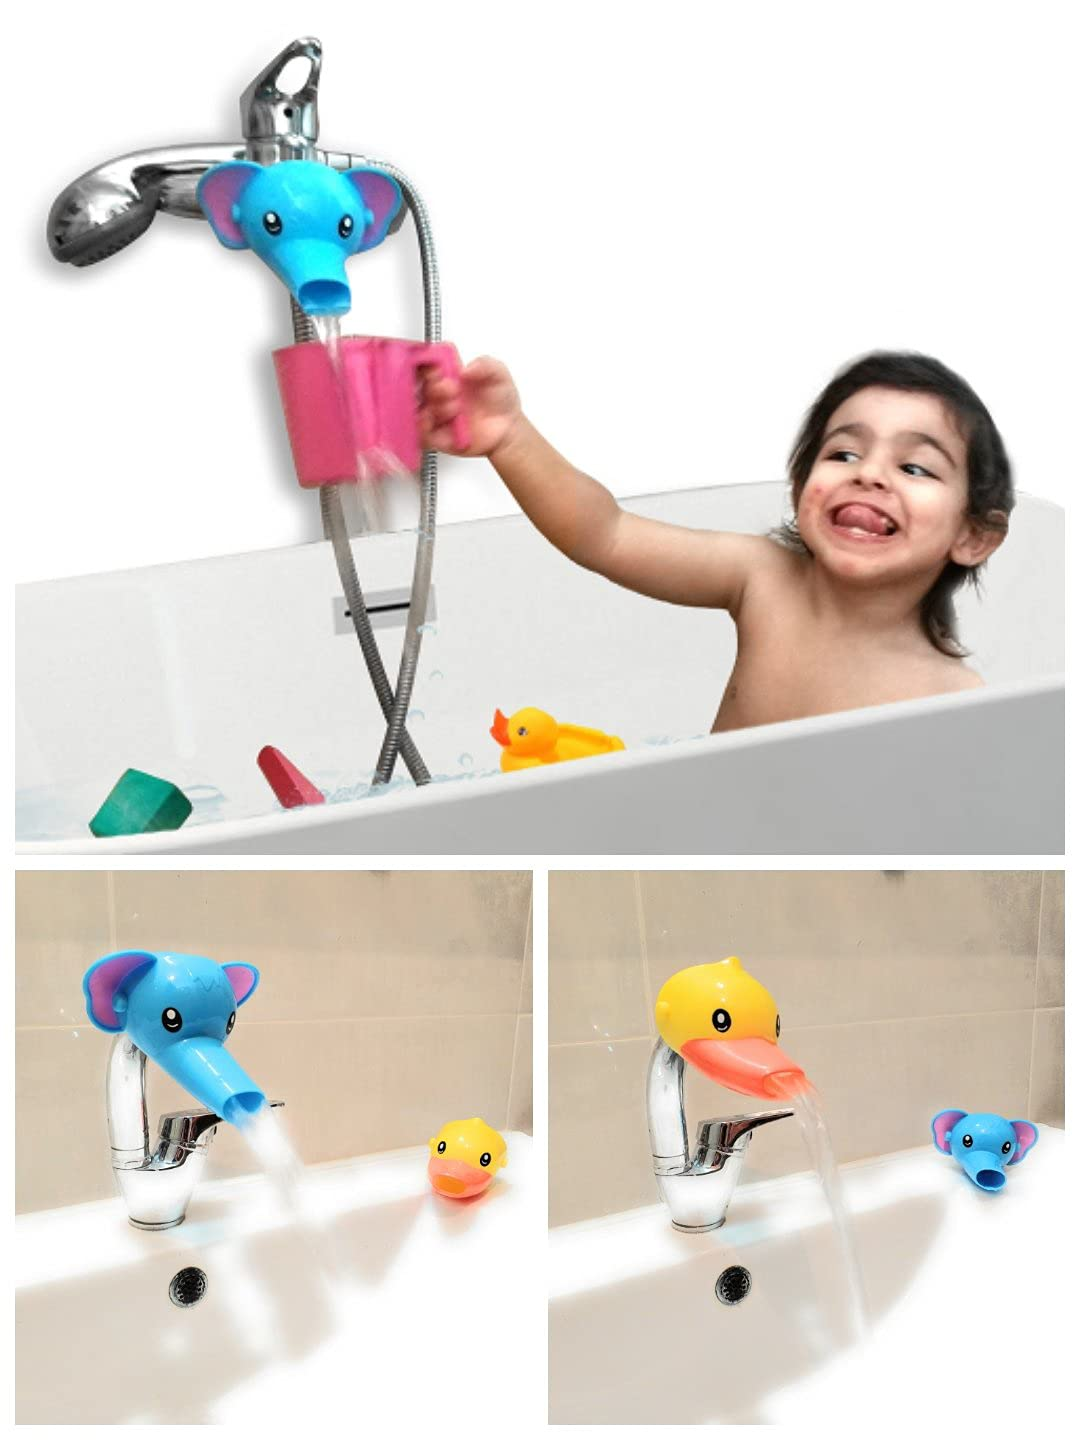 RafaLife Bath Toys - Faucet Extender, Animal Spout Sink Handle Extender for Toddlers Kids, Baby Safe and Fun Hand-Washing Solution, Promotes Hand Washing in Children (3 Pack)